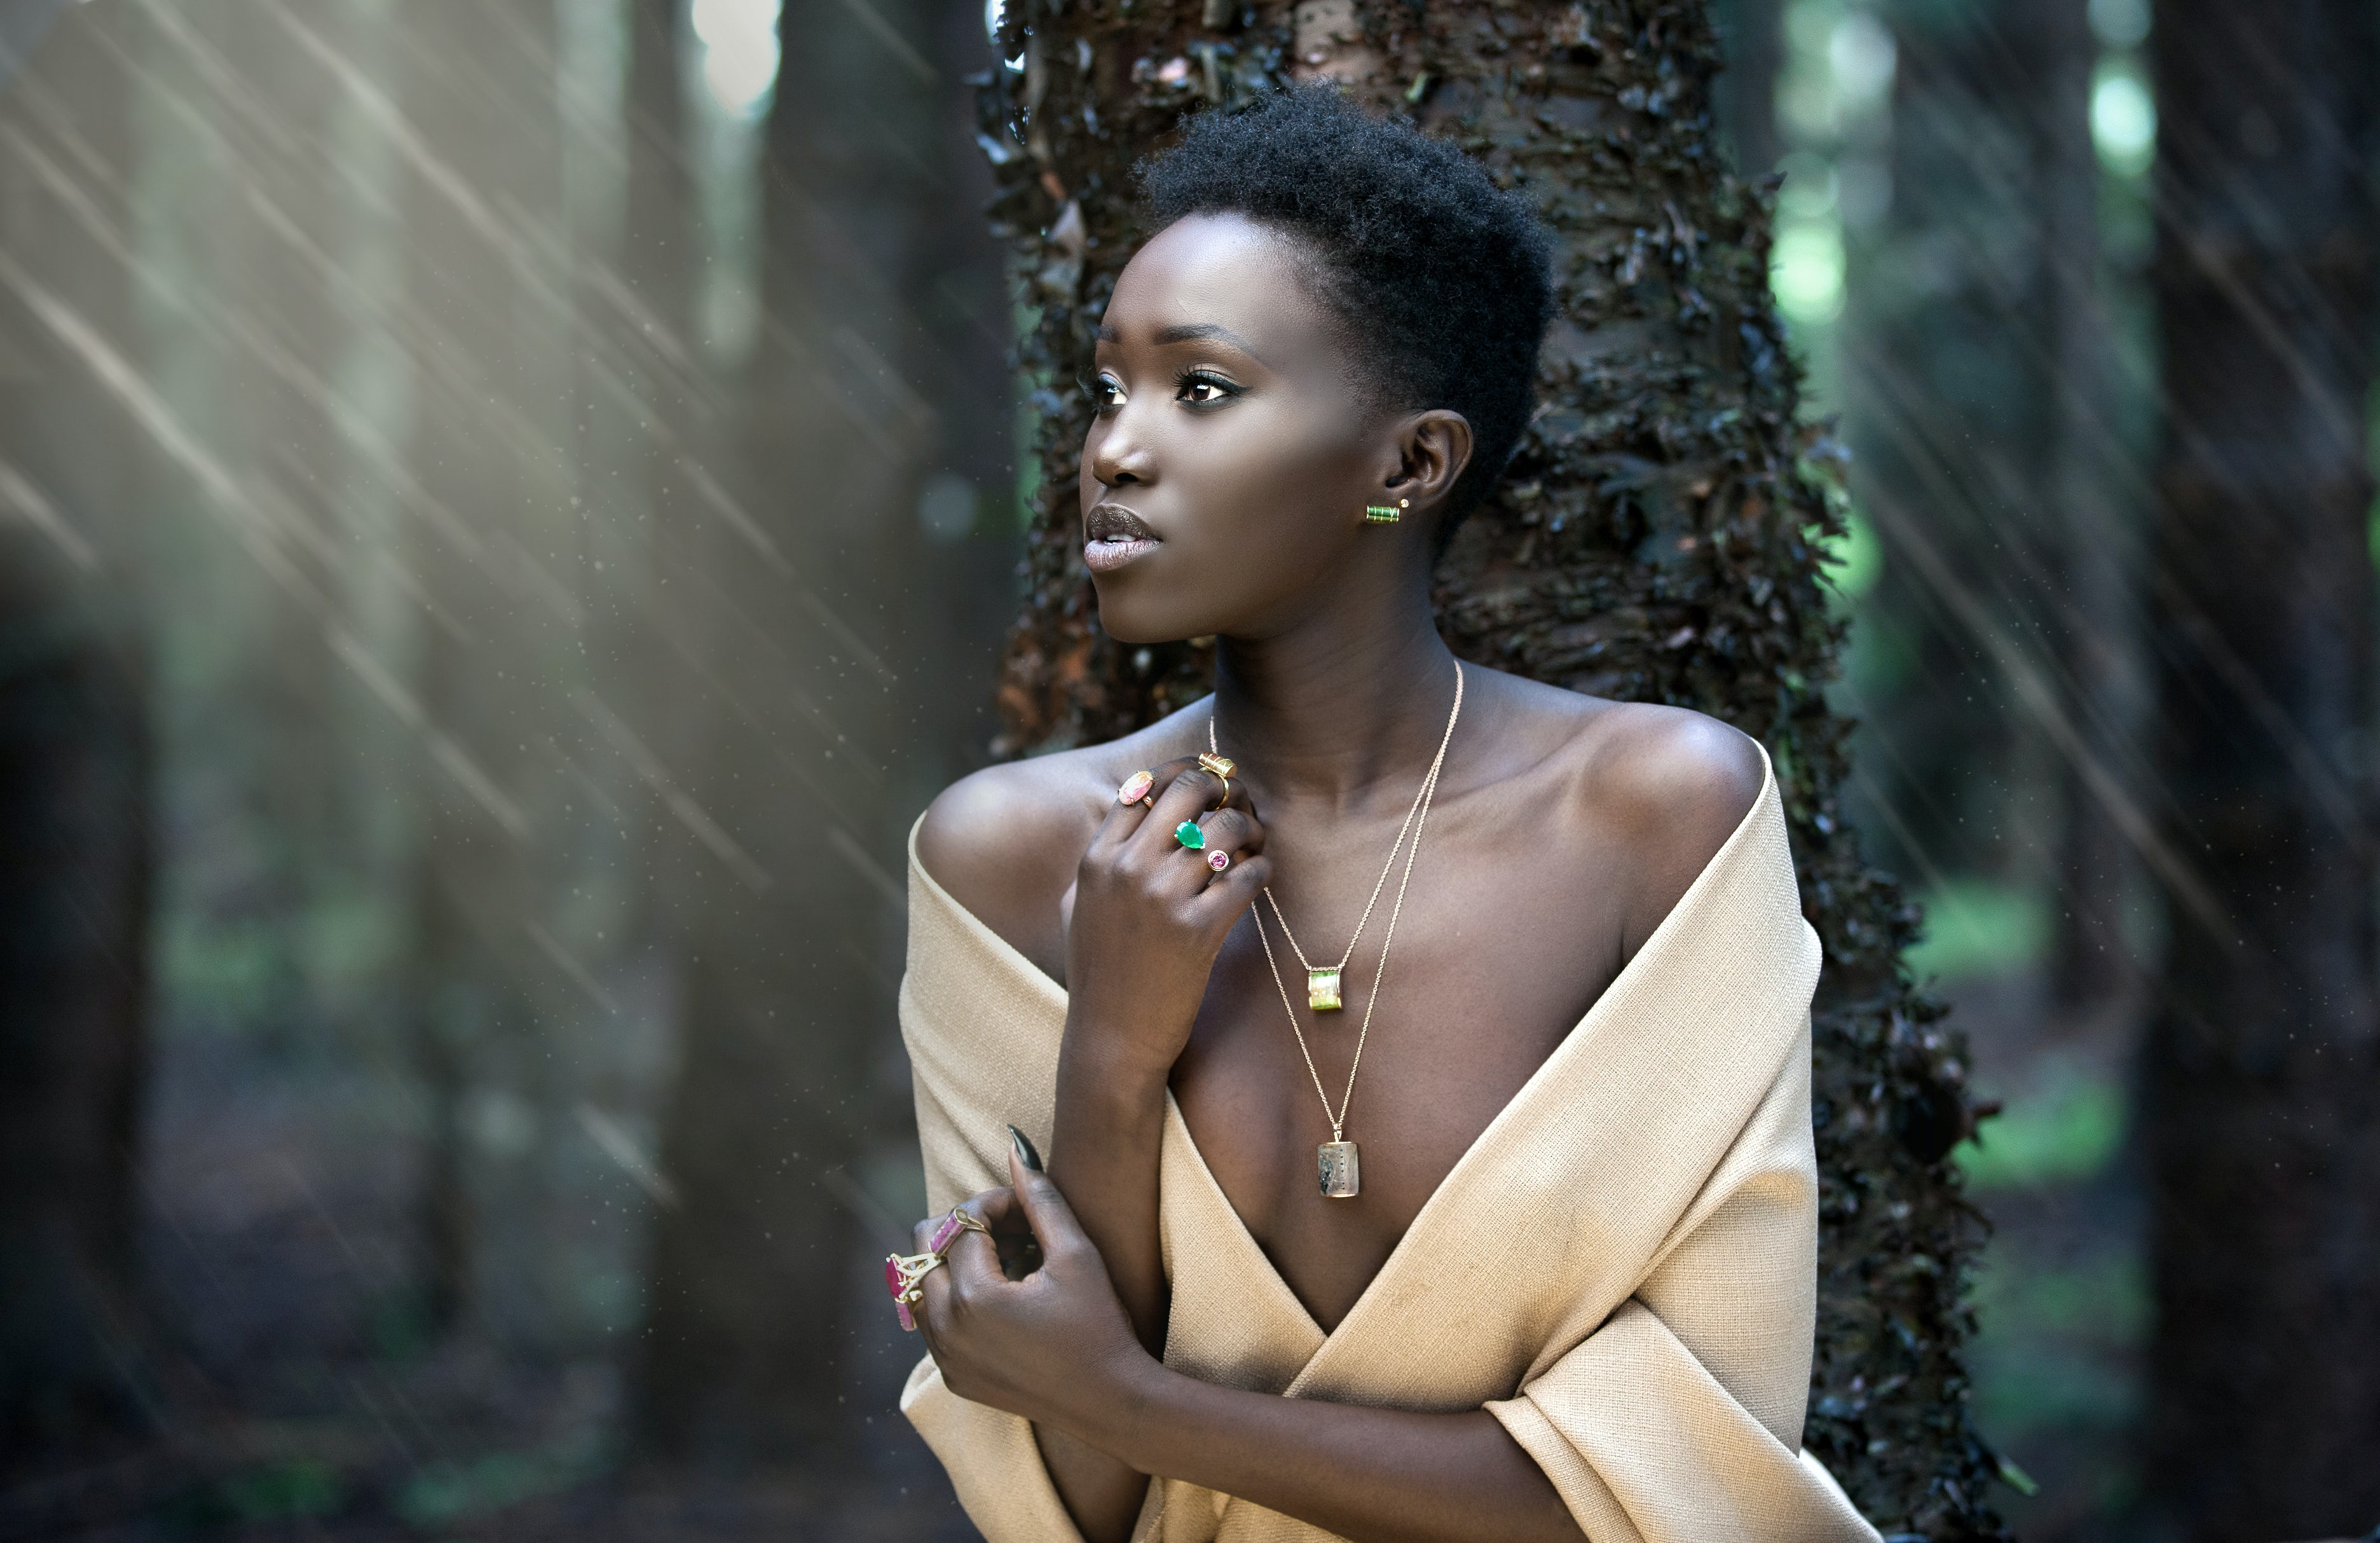 Jewellery by Iver Rosenkrantz | Photography by Emmanuel Jambo